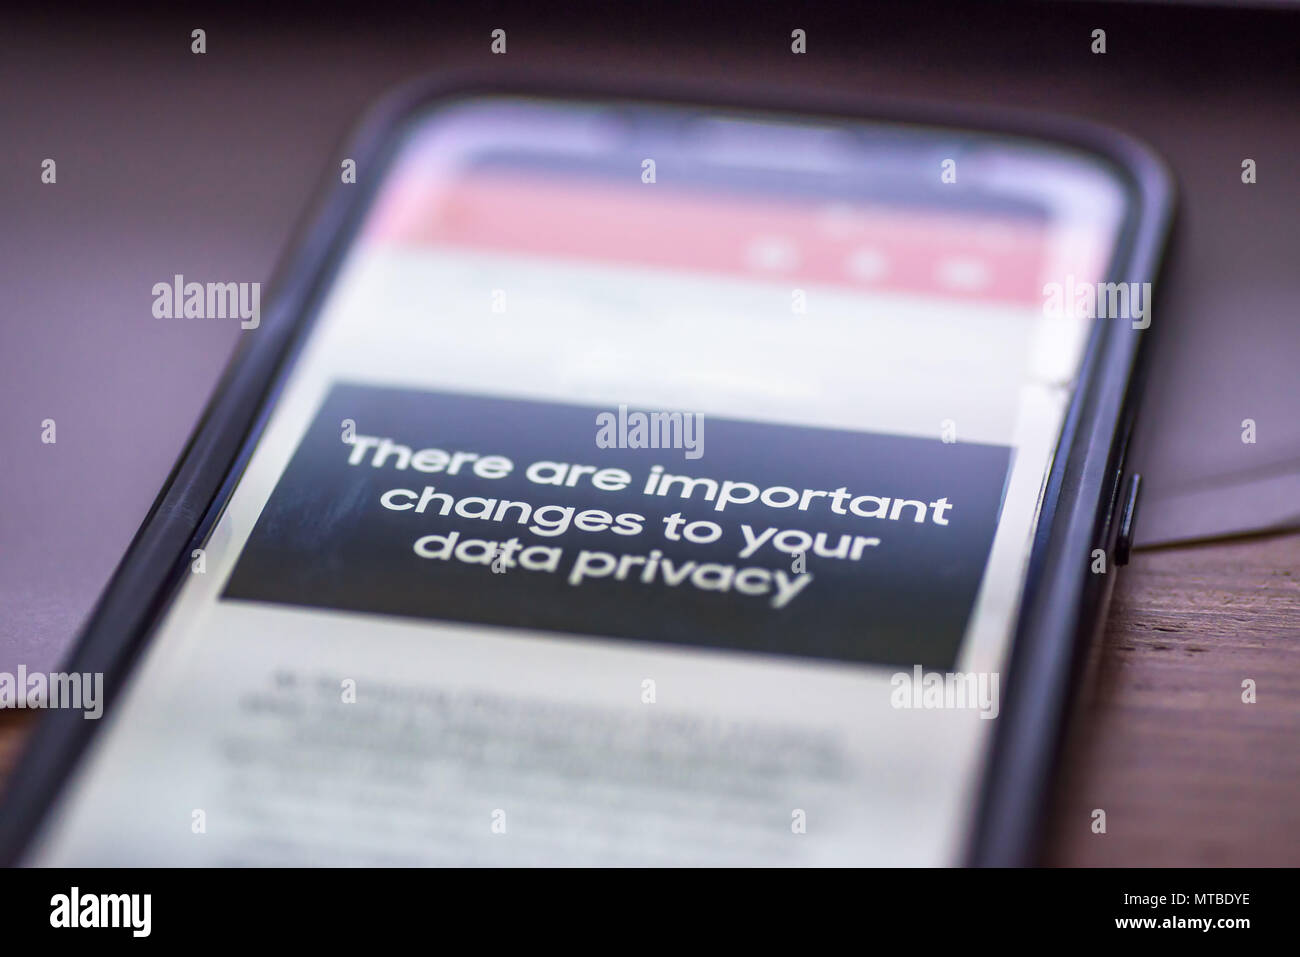 General Data Protection Regulation - GDPR - closeup smartphone message There Are Important Changes To Your Data Privacy. - Stock Image